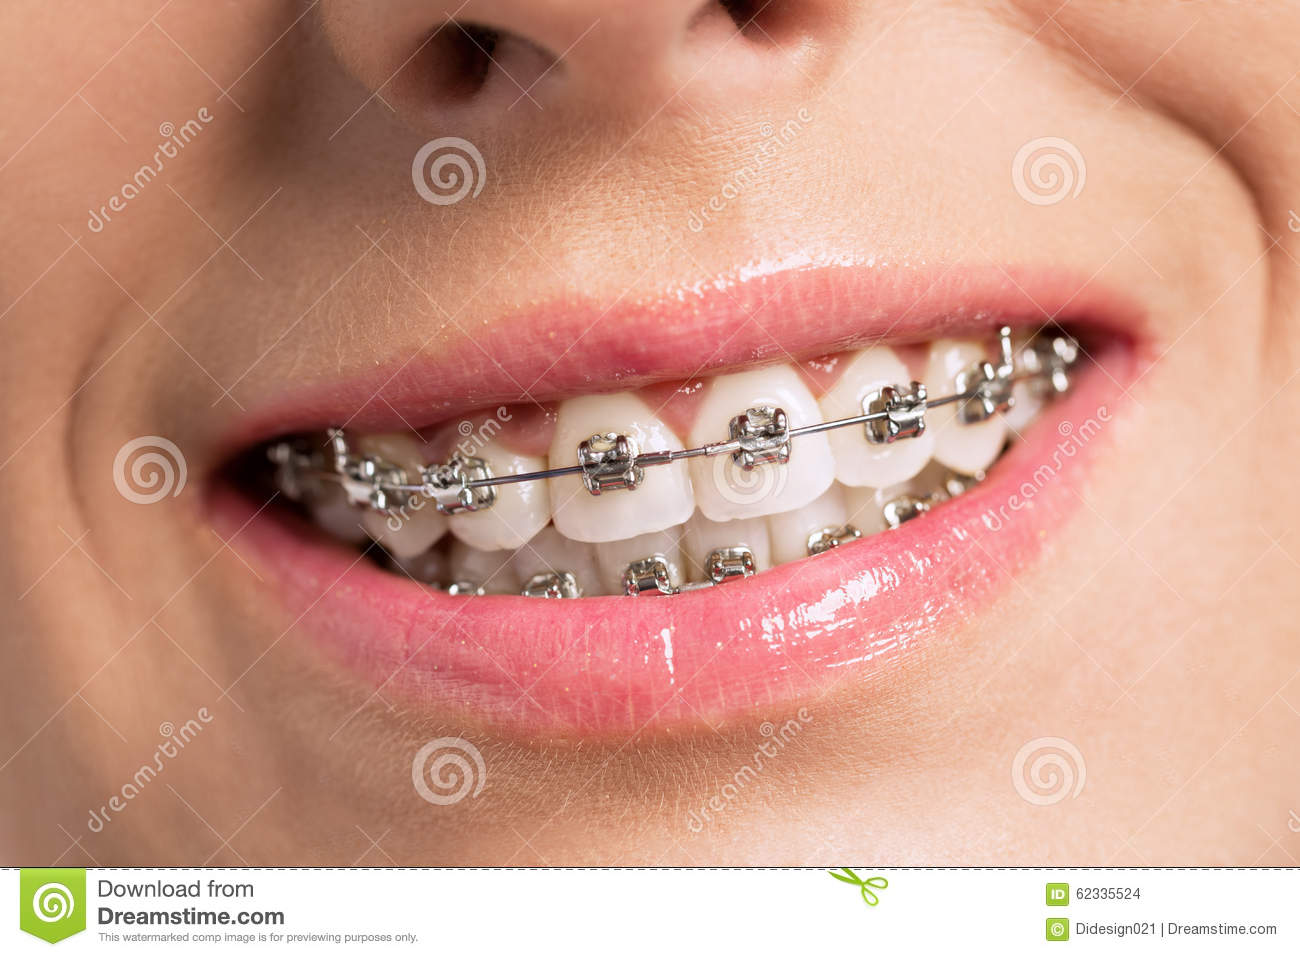 Perfect Teeth After Braces Tumblr   www.imgkid.com - The ...